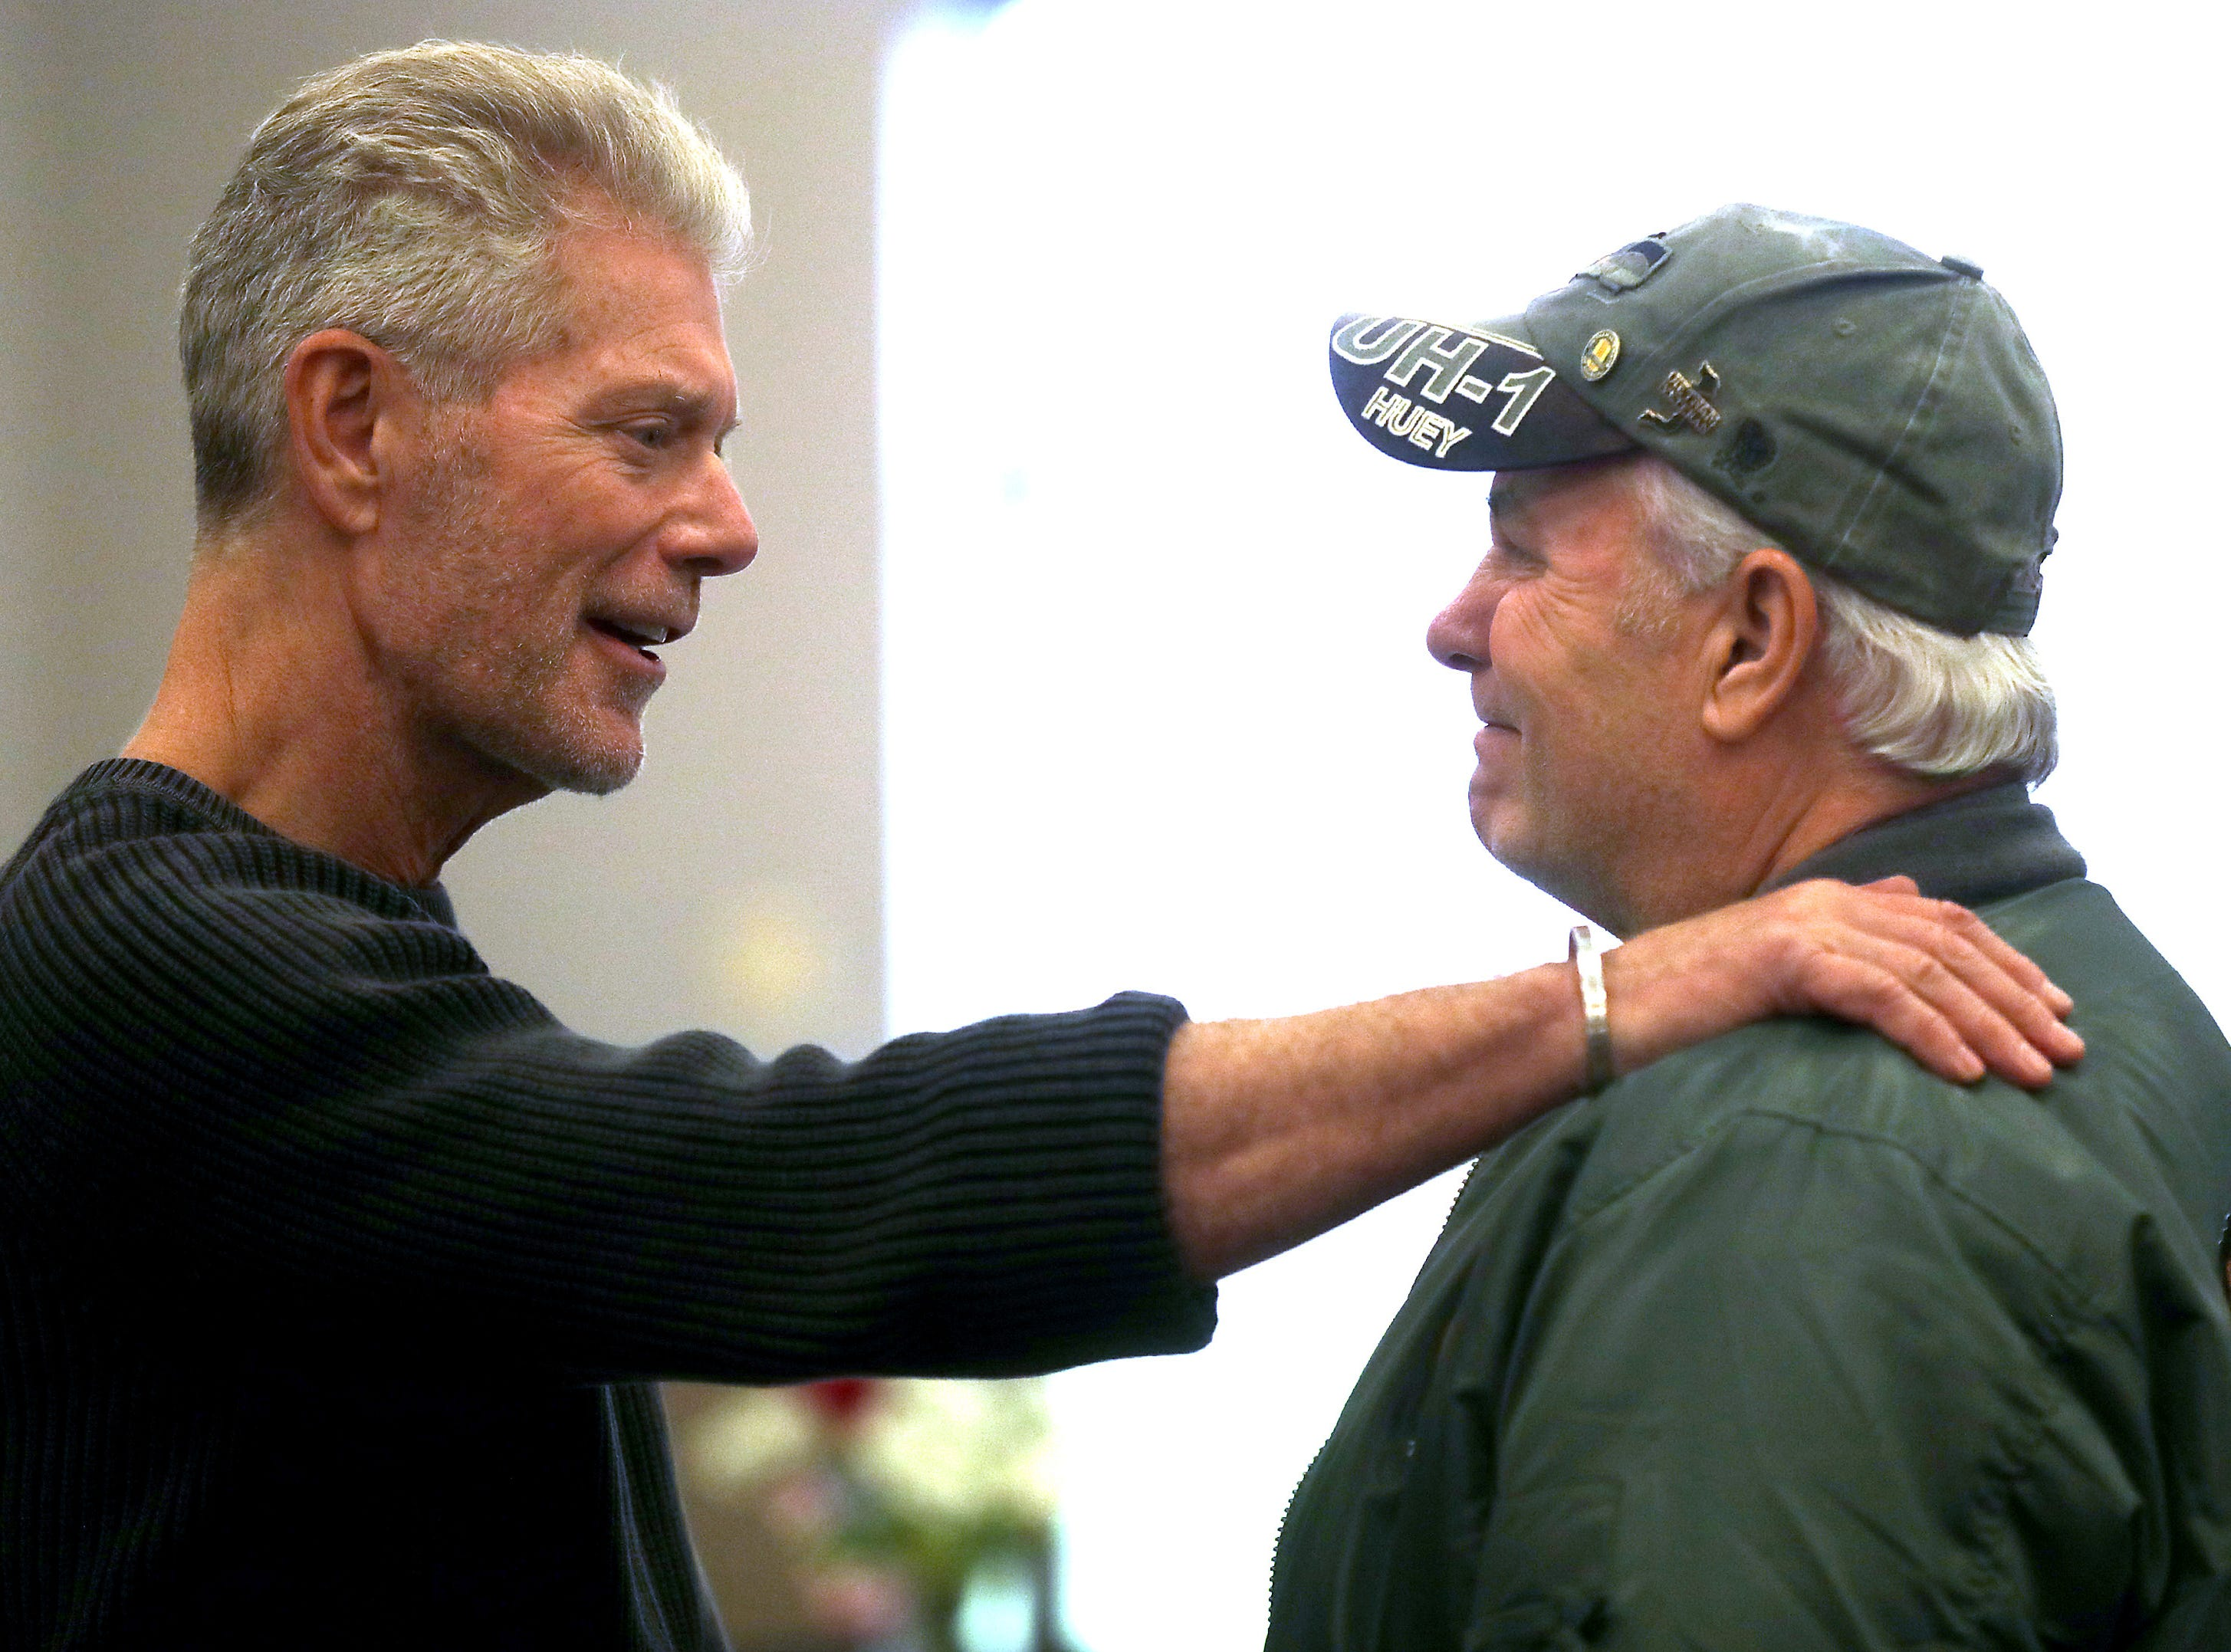 Actor Stephen Lang, left, speaks with U.S. Army veteran Bruce Leavitt, who served in Vietnam, during the 